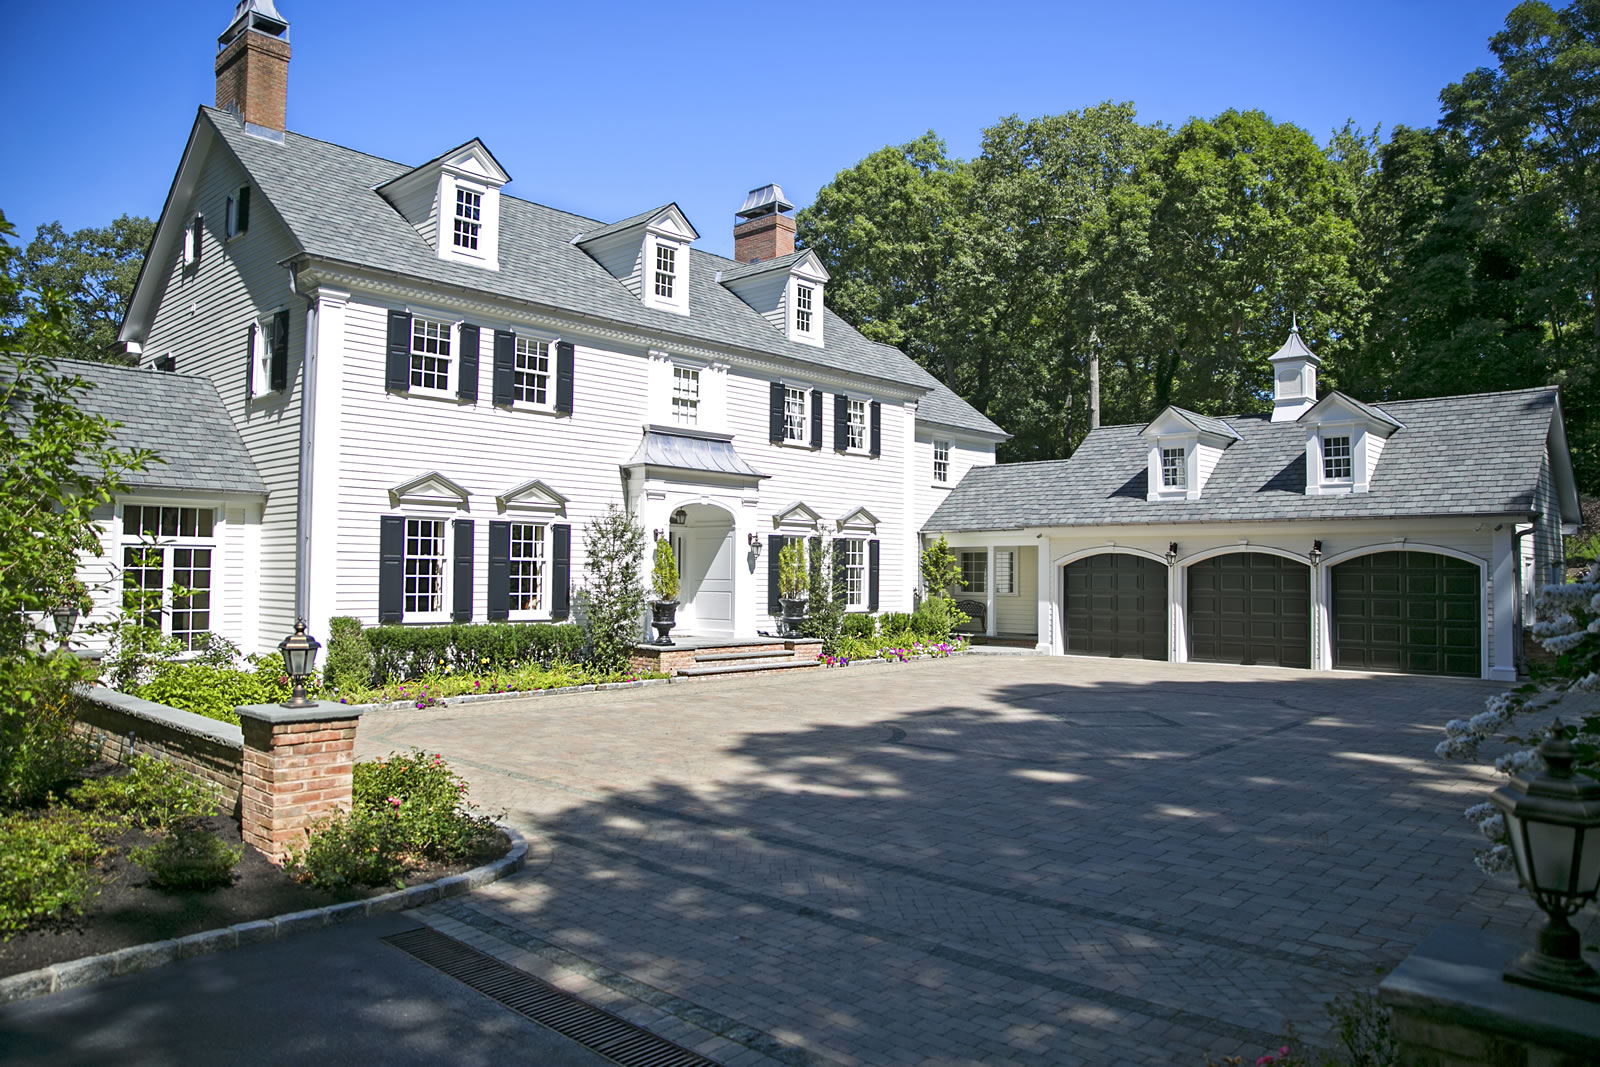 Landscape Architecture and Construction in Brookhaven, NY